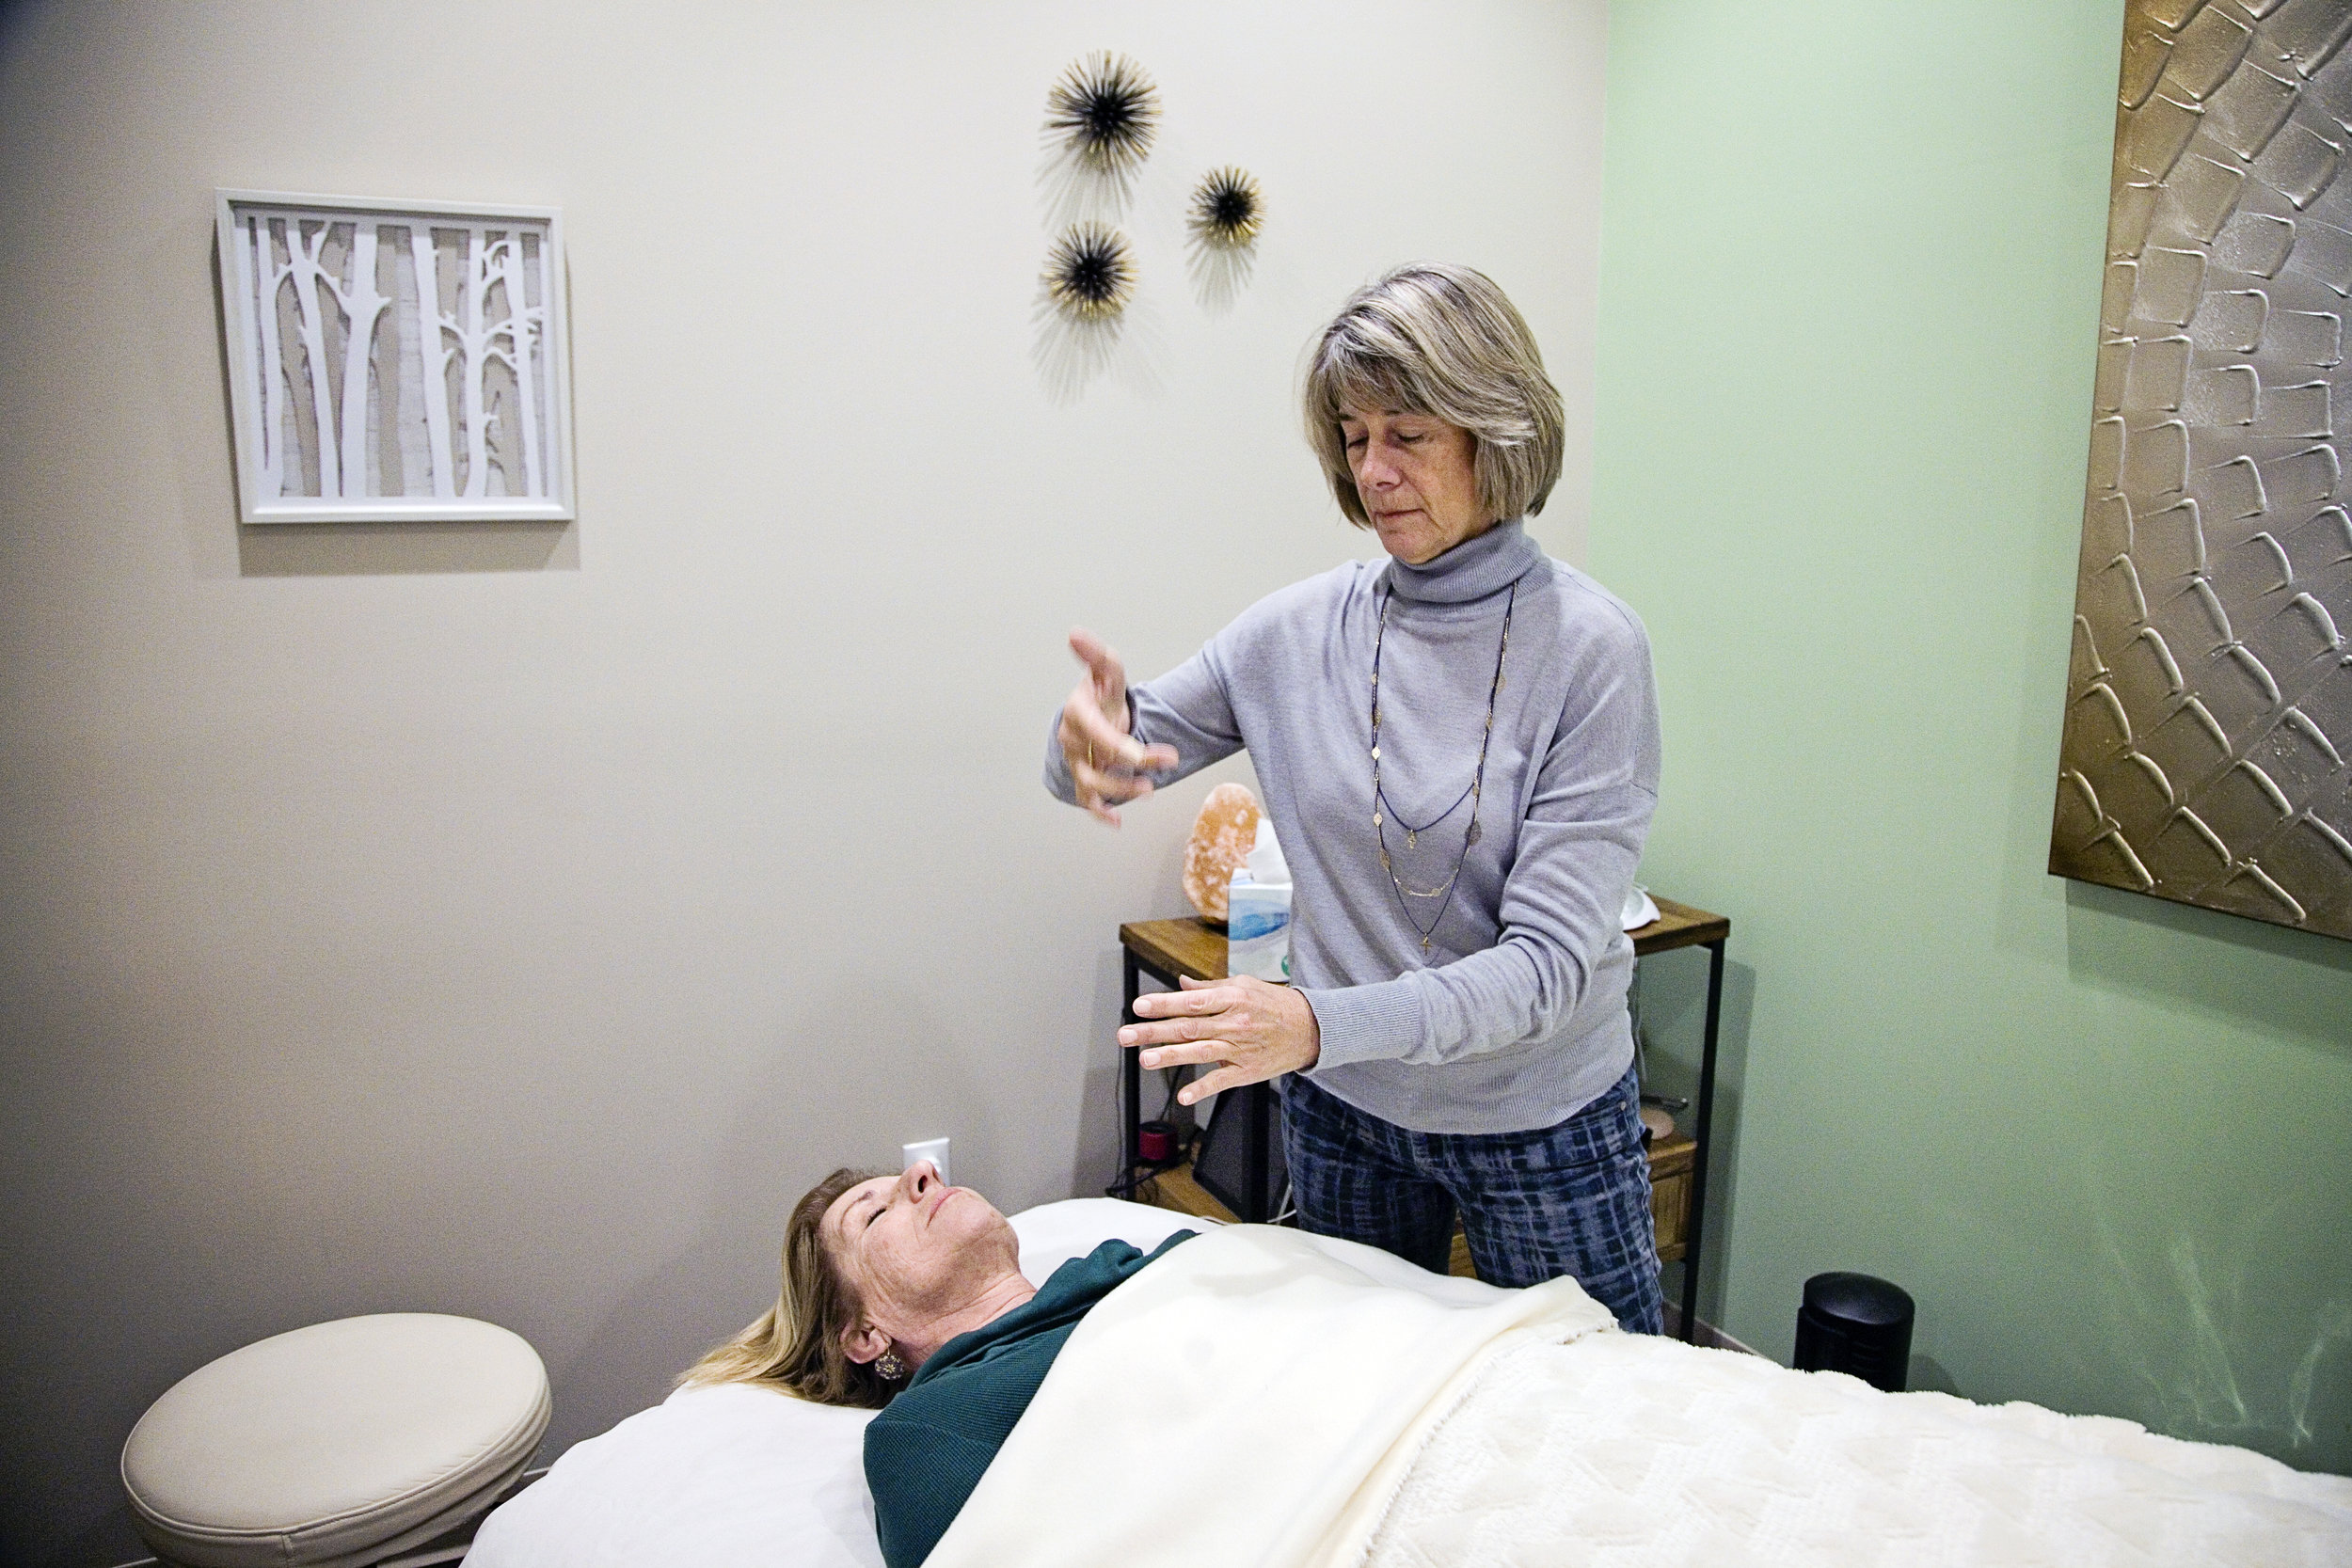 Spiritual Energy Therapist Chris Wheeler, CST conduction an energy therapy session on a client (photo).